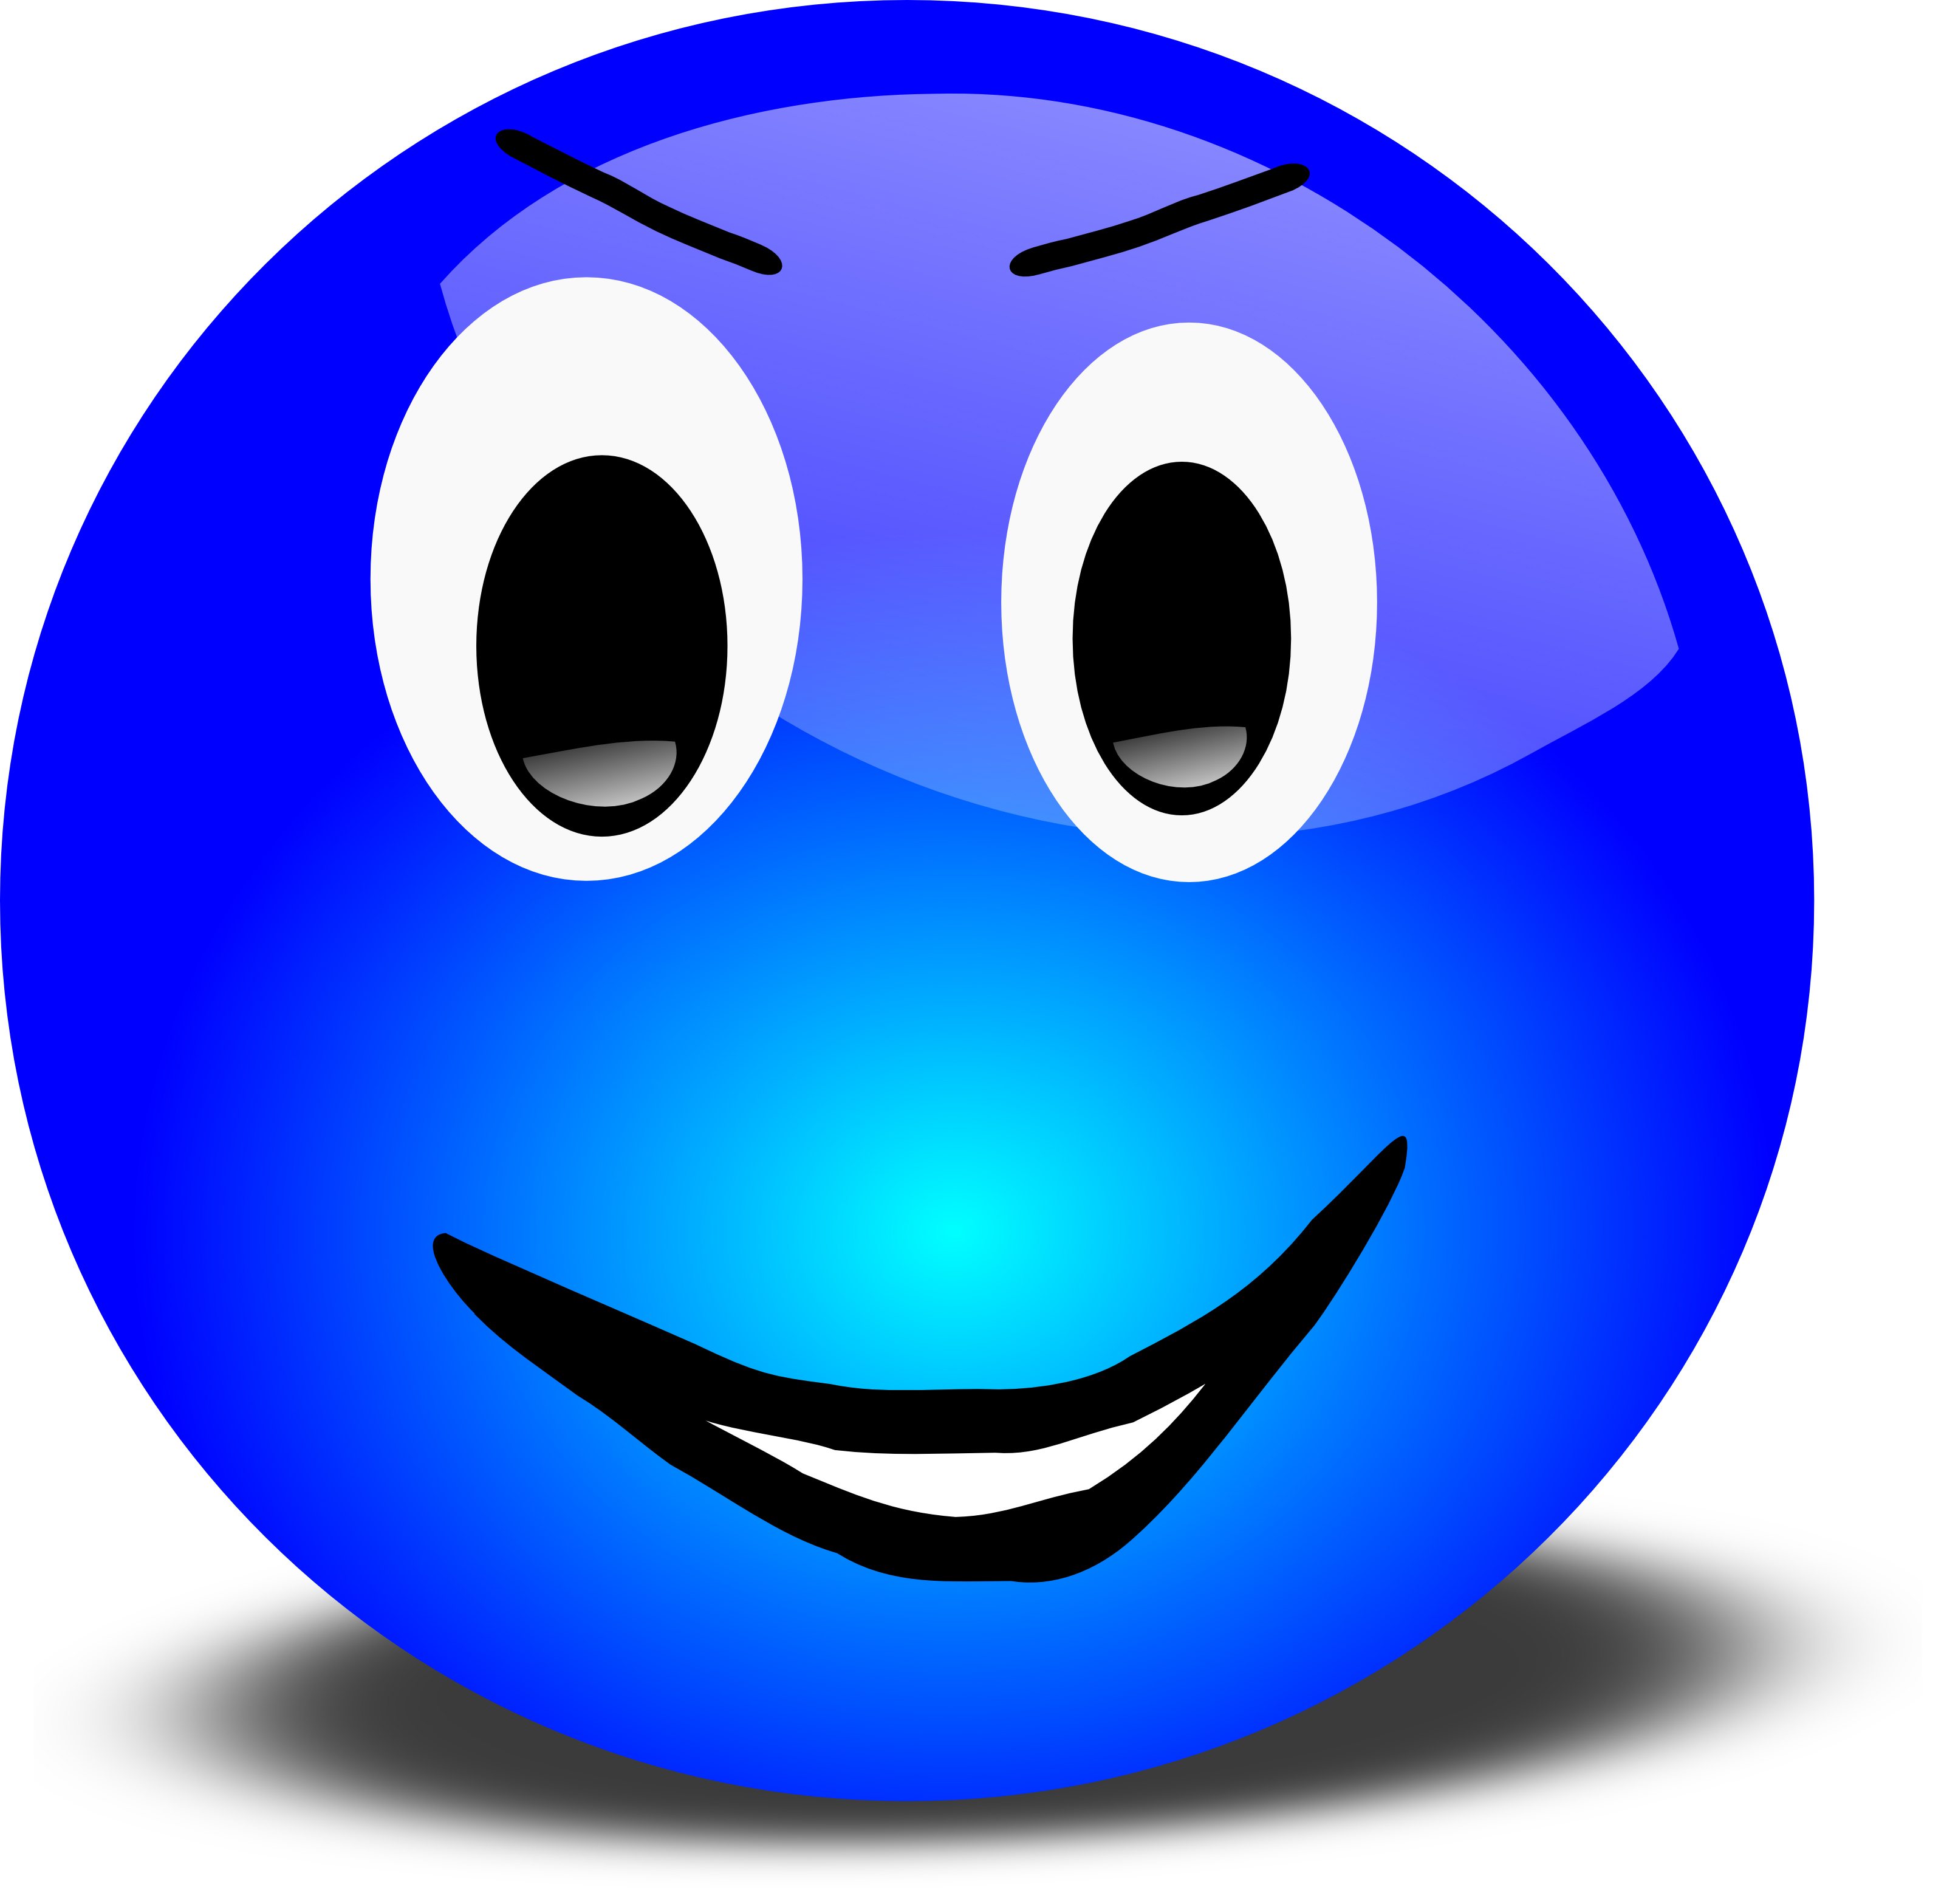 http://free.clipartof.com/83-Free-3d-Grinning-Blue-Smiley-Face-Clipart-Illustration.jpg